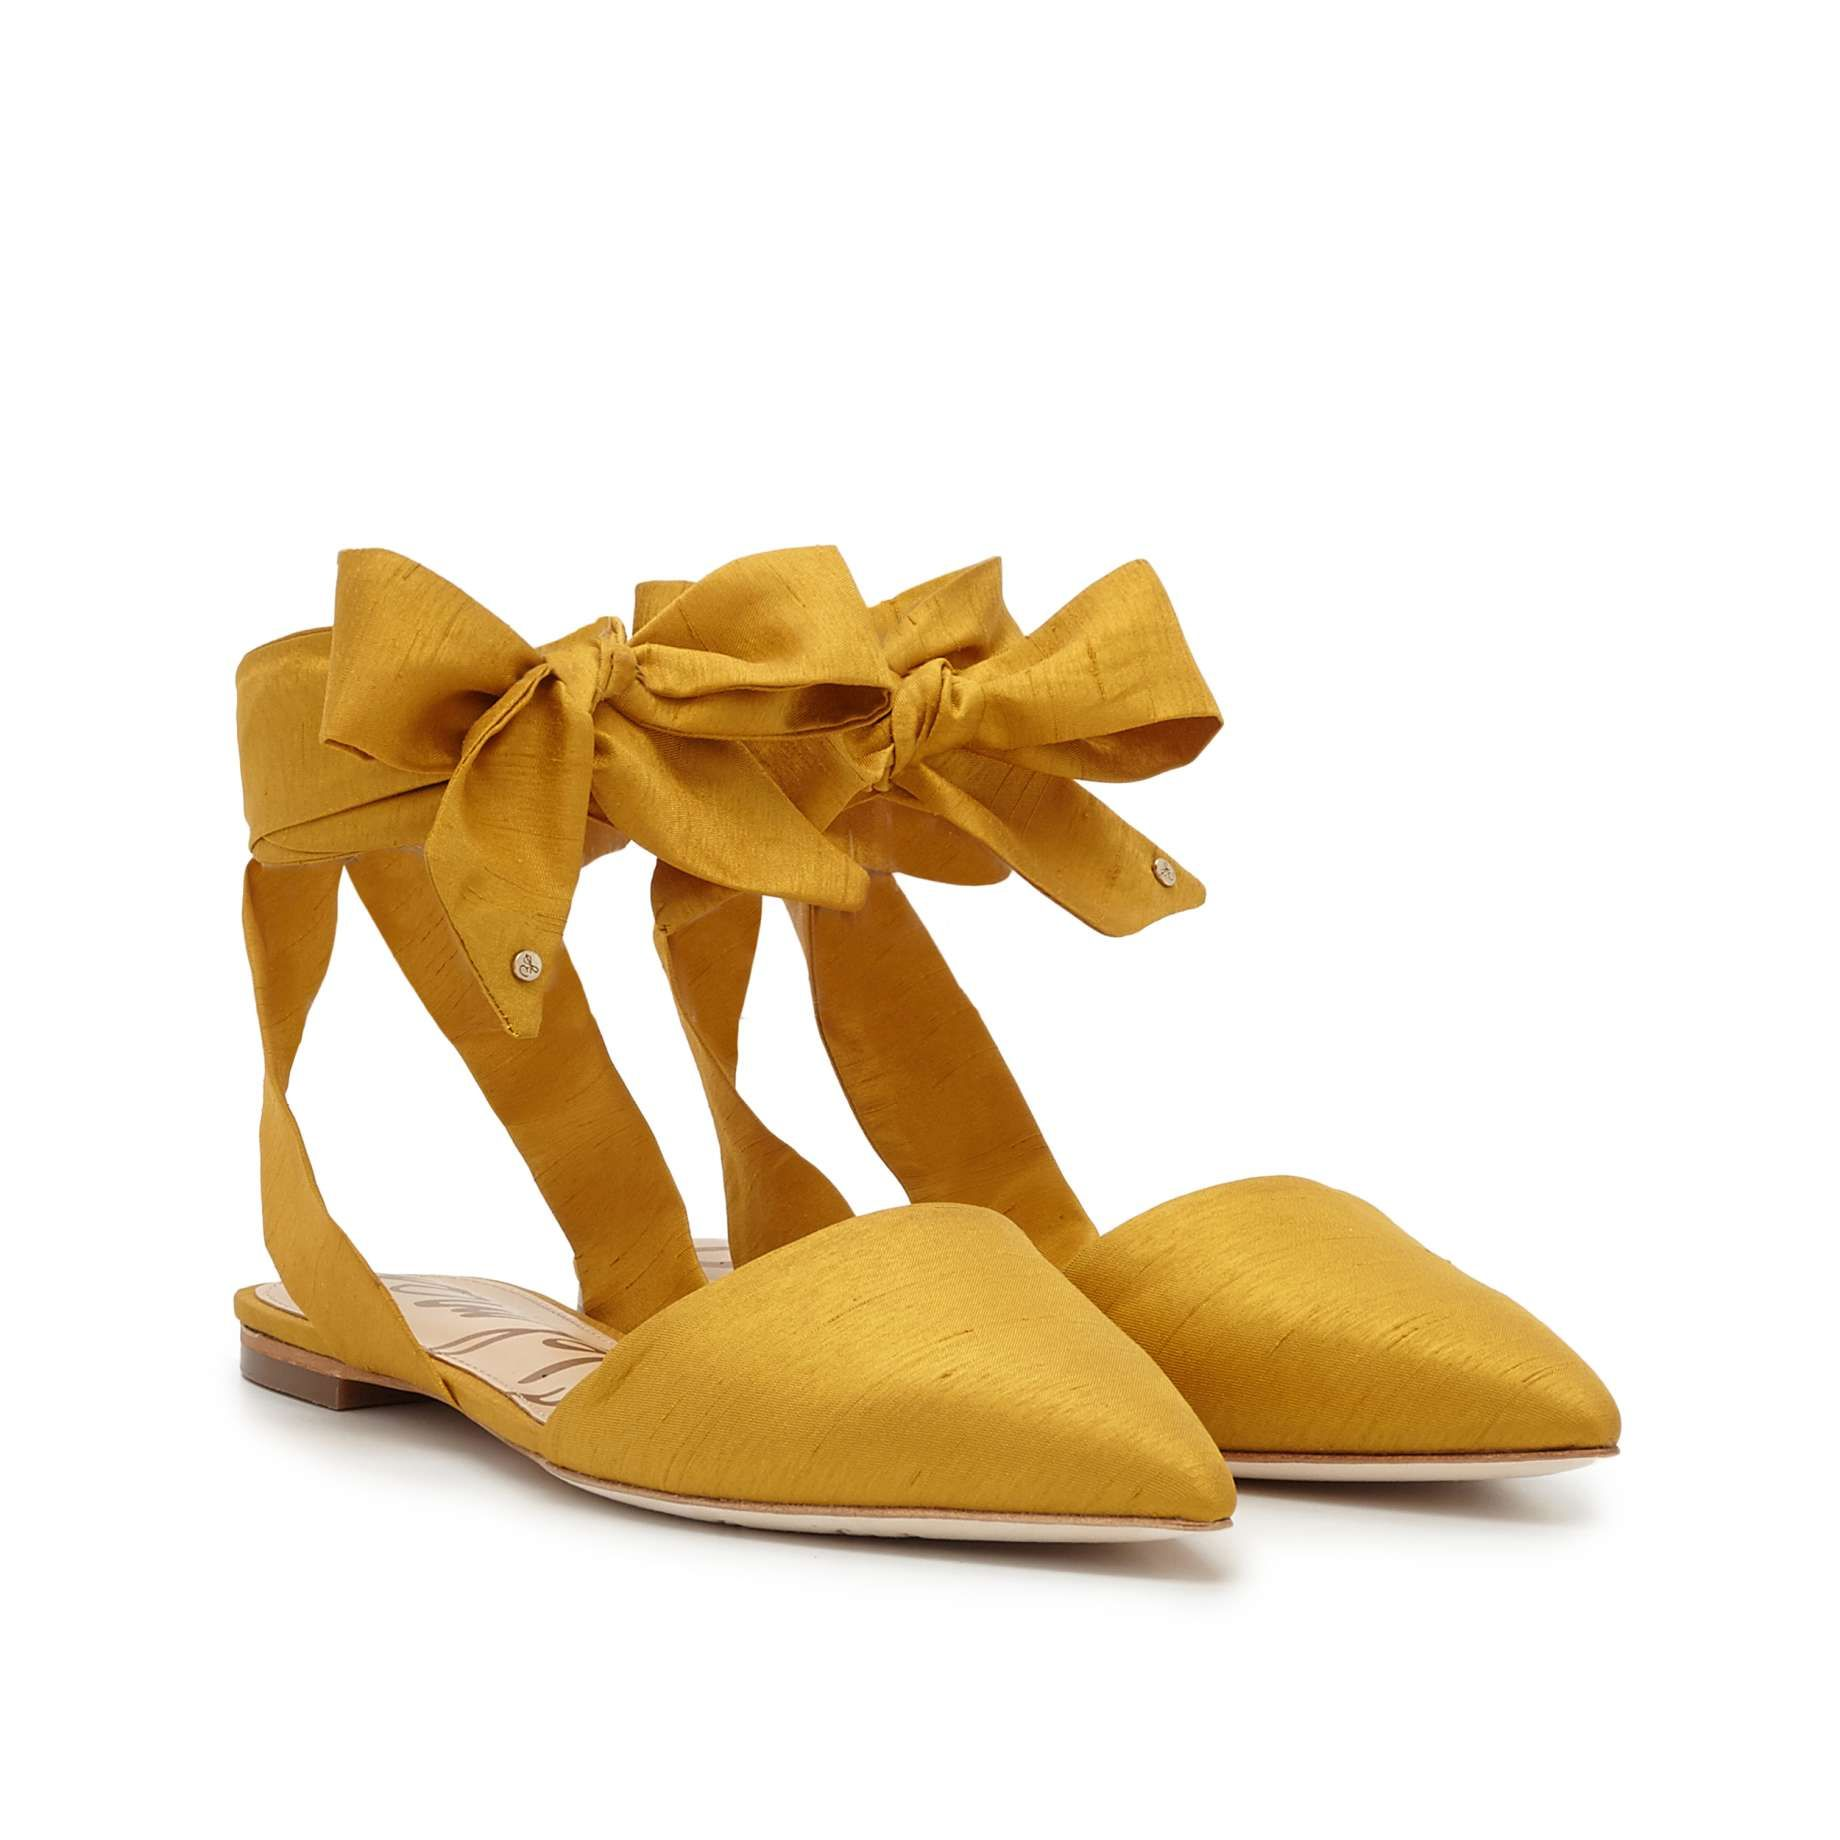 19acc1df6 add ankle ribbons as an option for my yellow flats